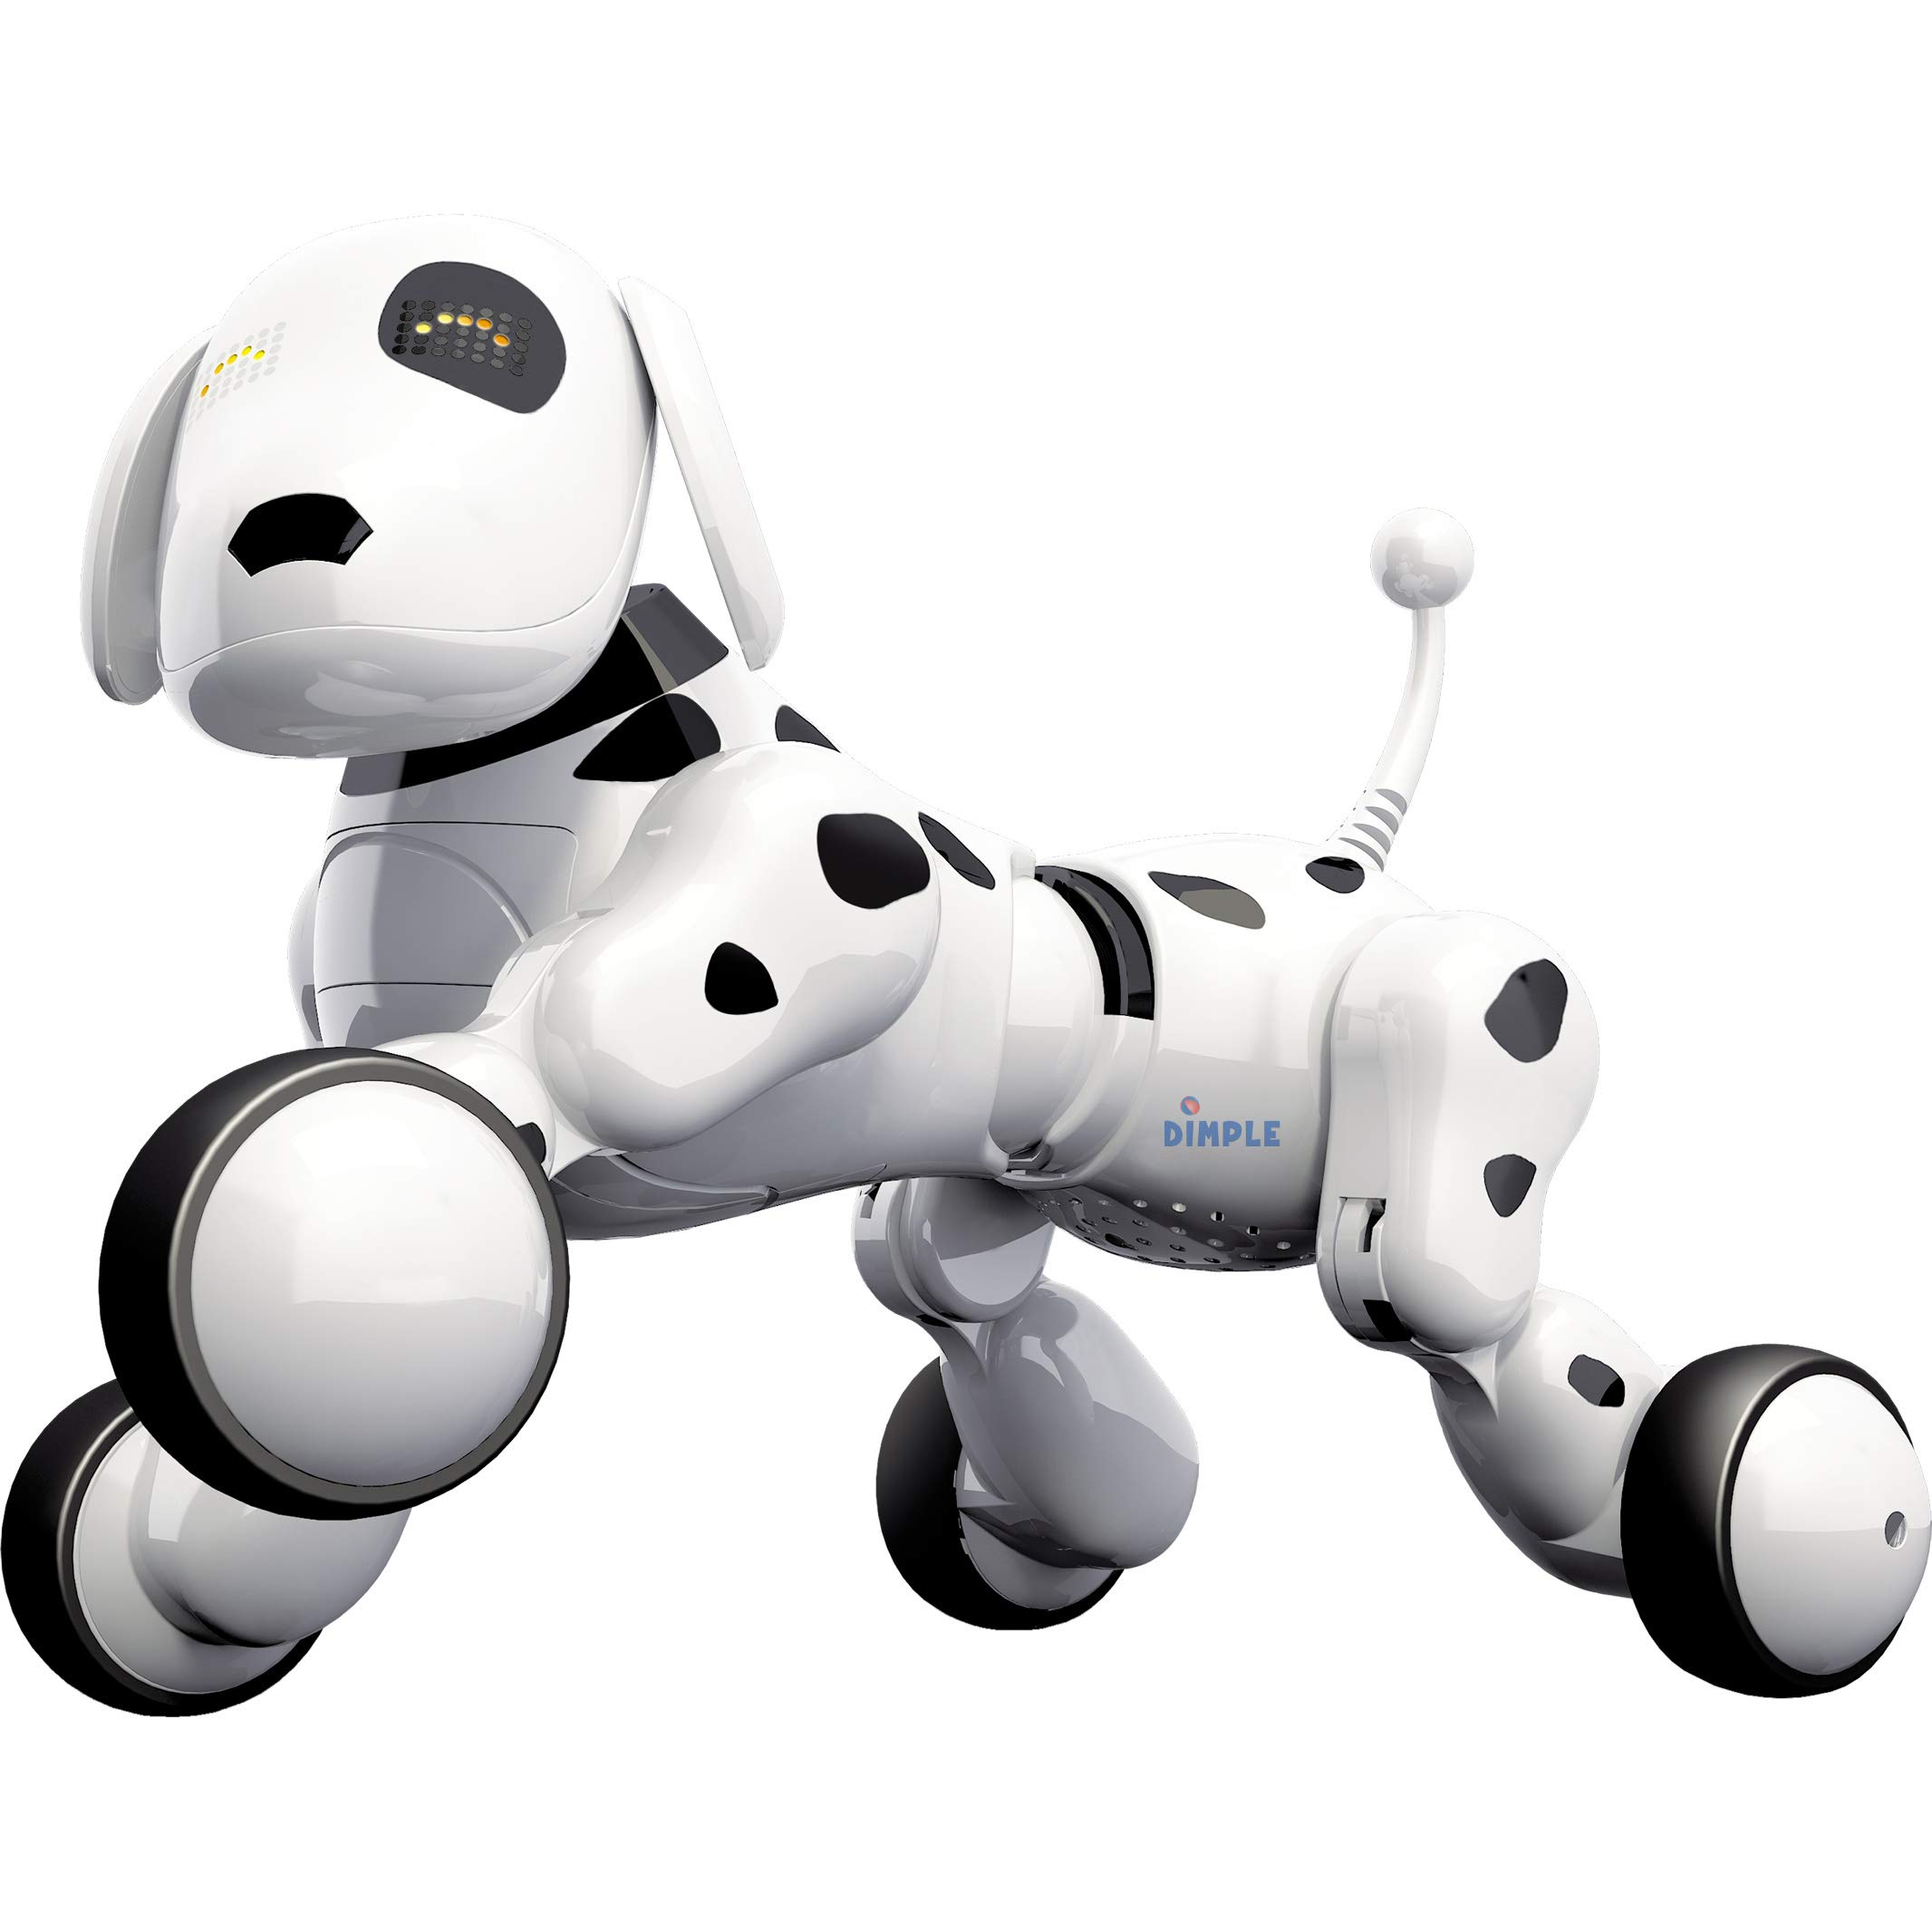 Dimple Interactive Robot Puppy With Wireless Remote Control RC Animal Dog Toy That Sings, Dances, Eye Mode, Speaks for Boys/Girls, Perfect Gift for Kids. by Dimple (Image #3)